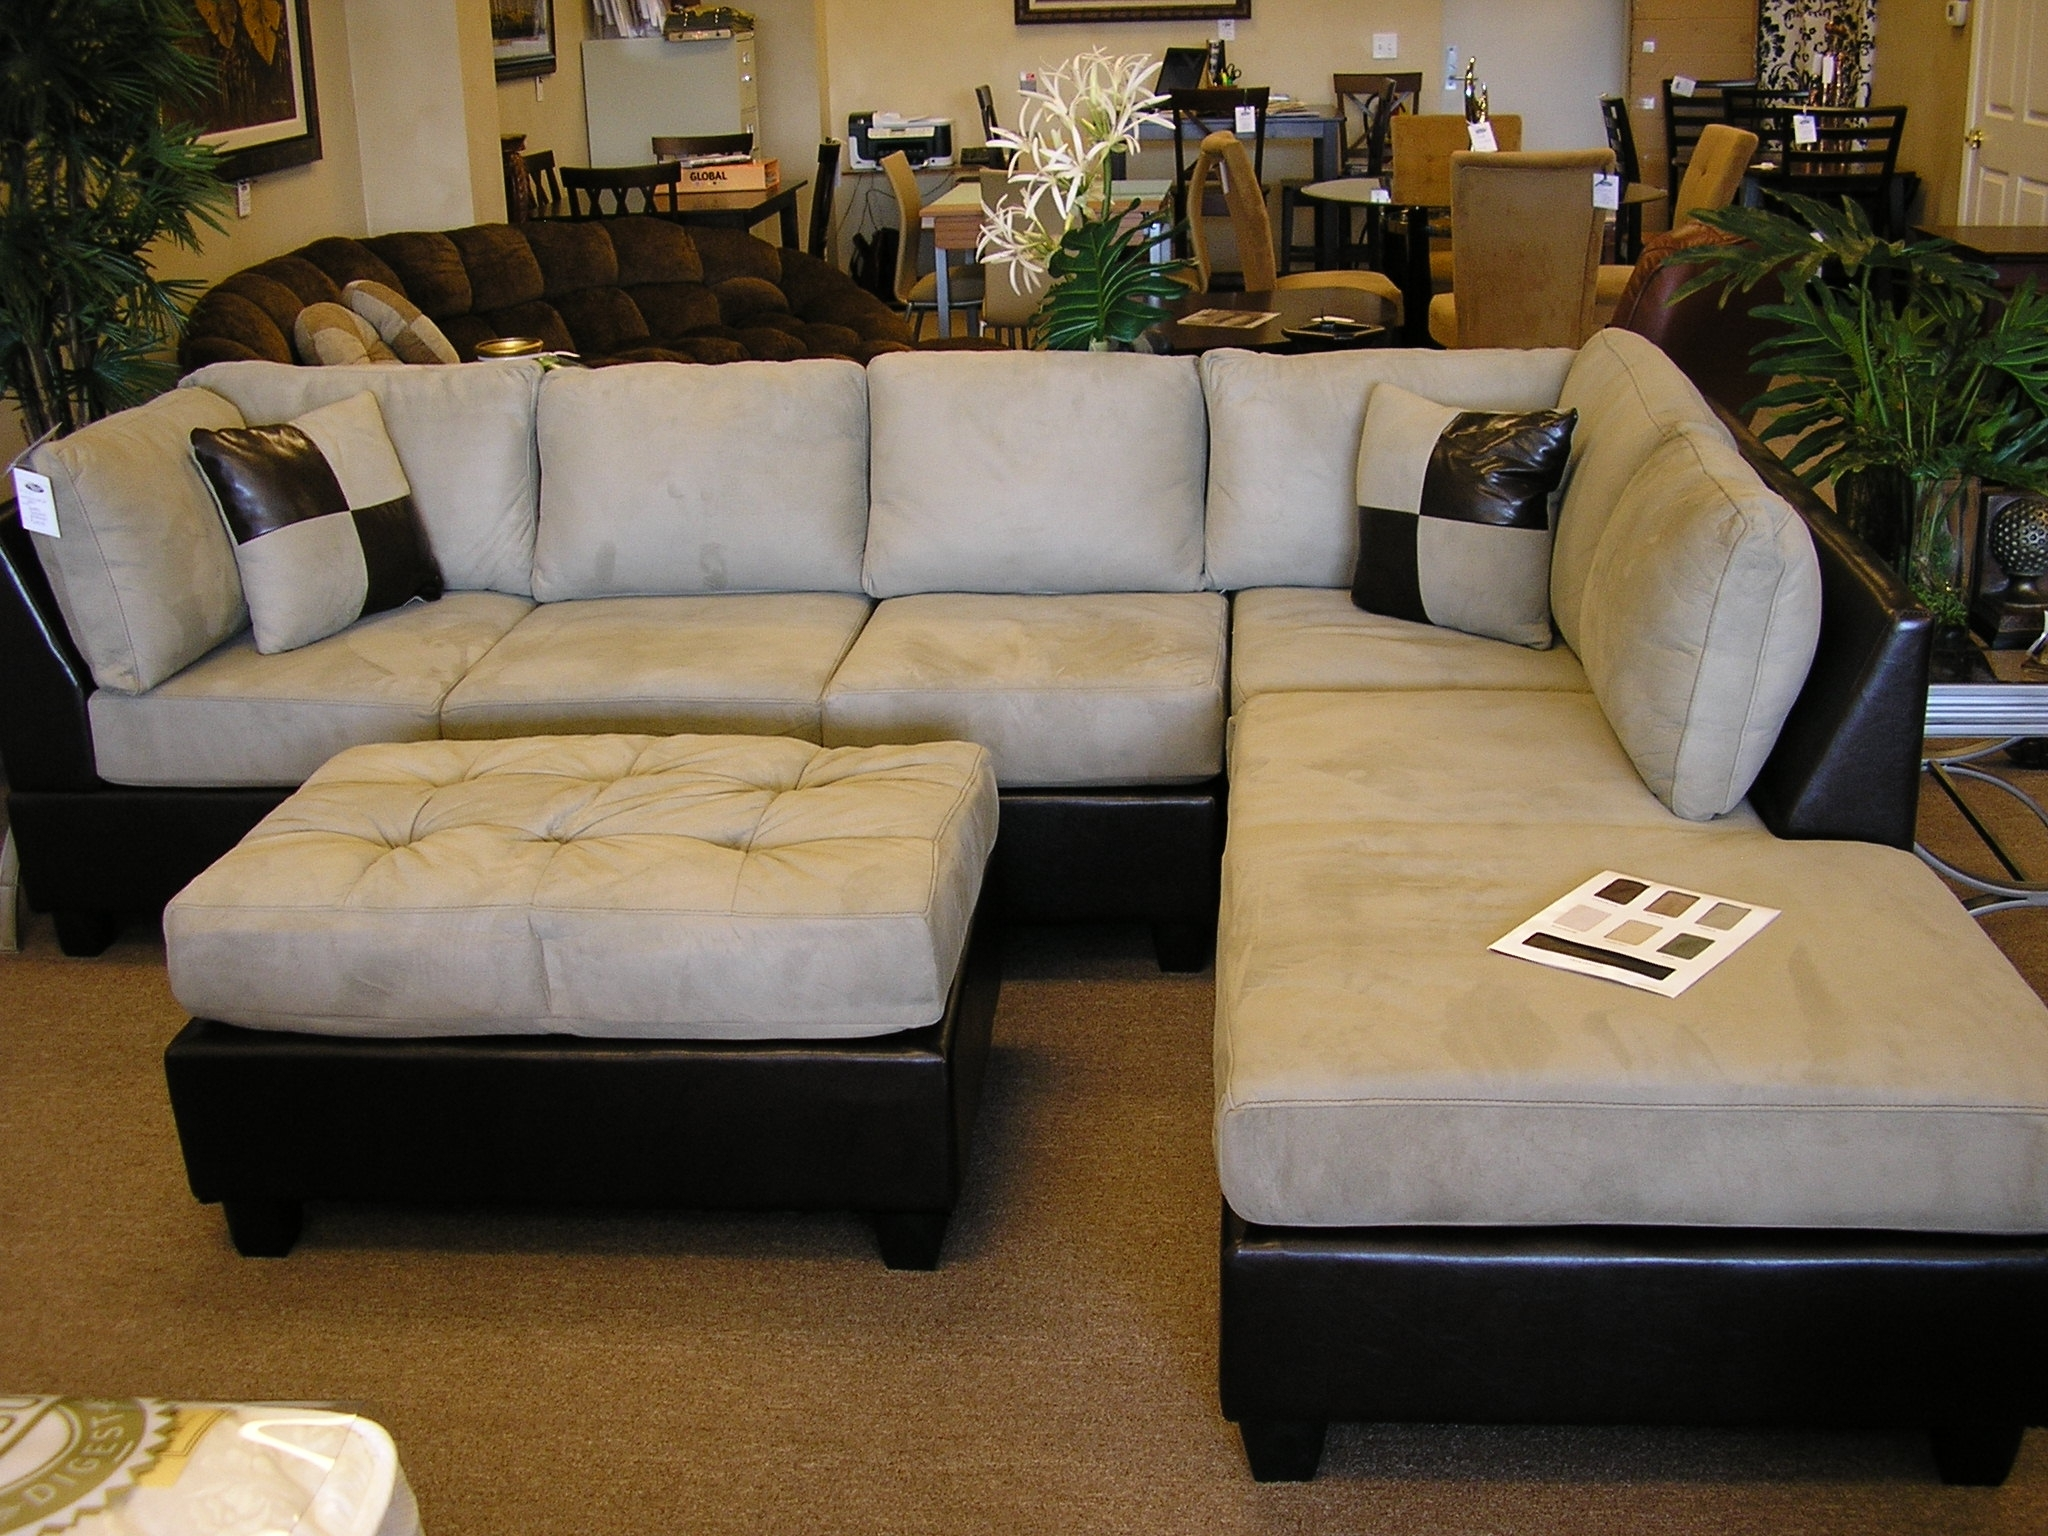 Cheap Sectional Sofa With Ottoman | Catosfera In Sectionals With Ottoman (View 8 of 15)